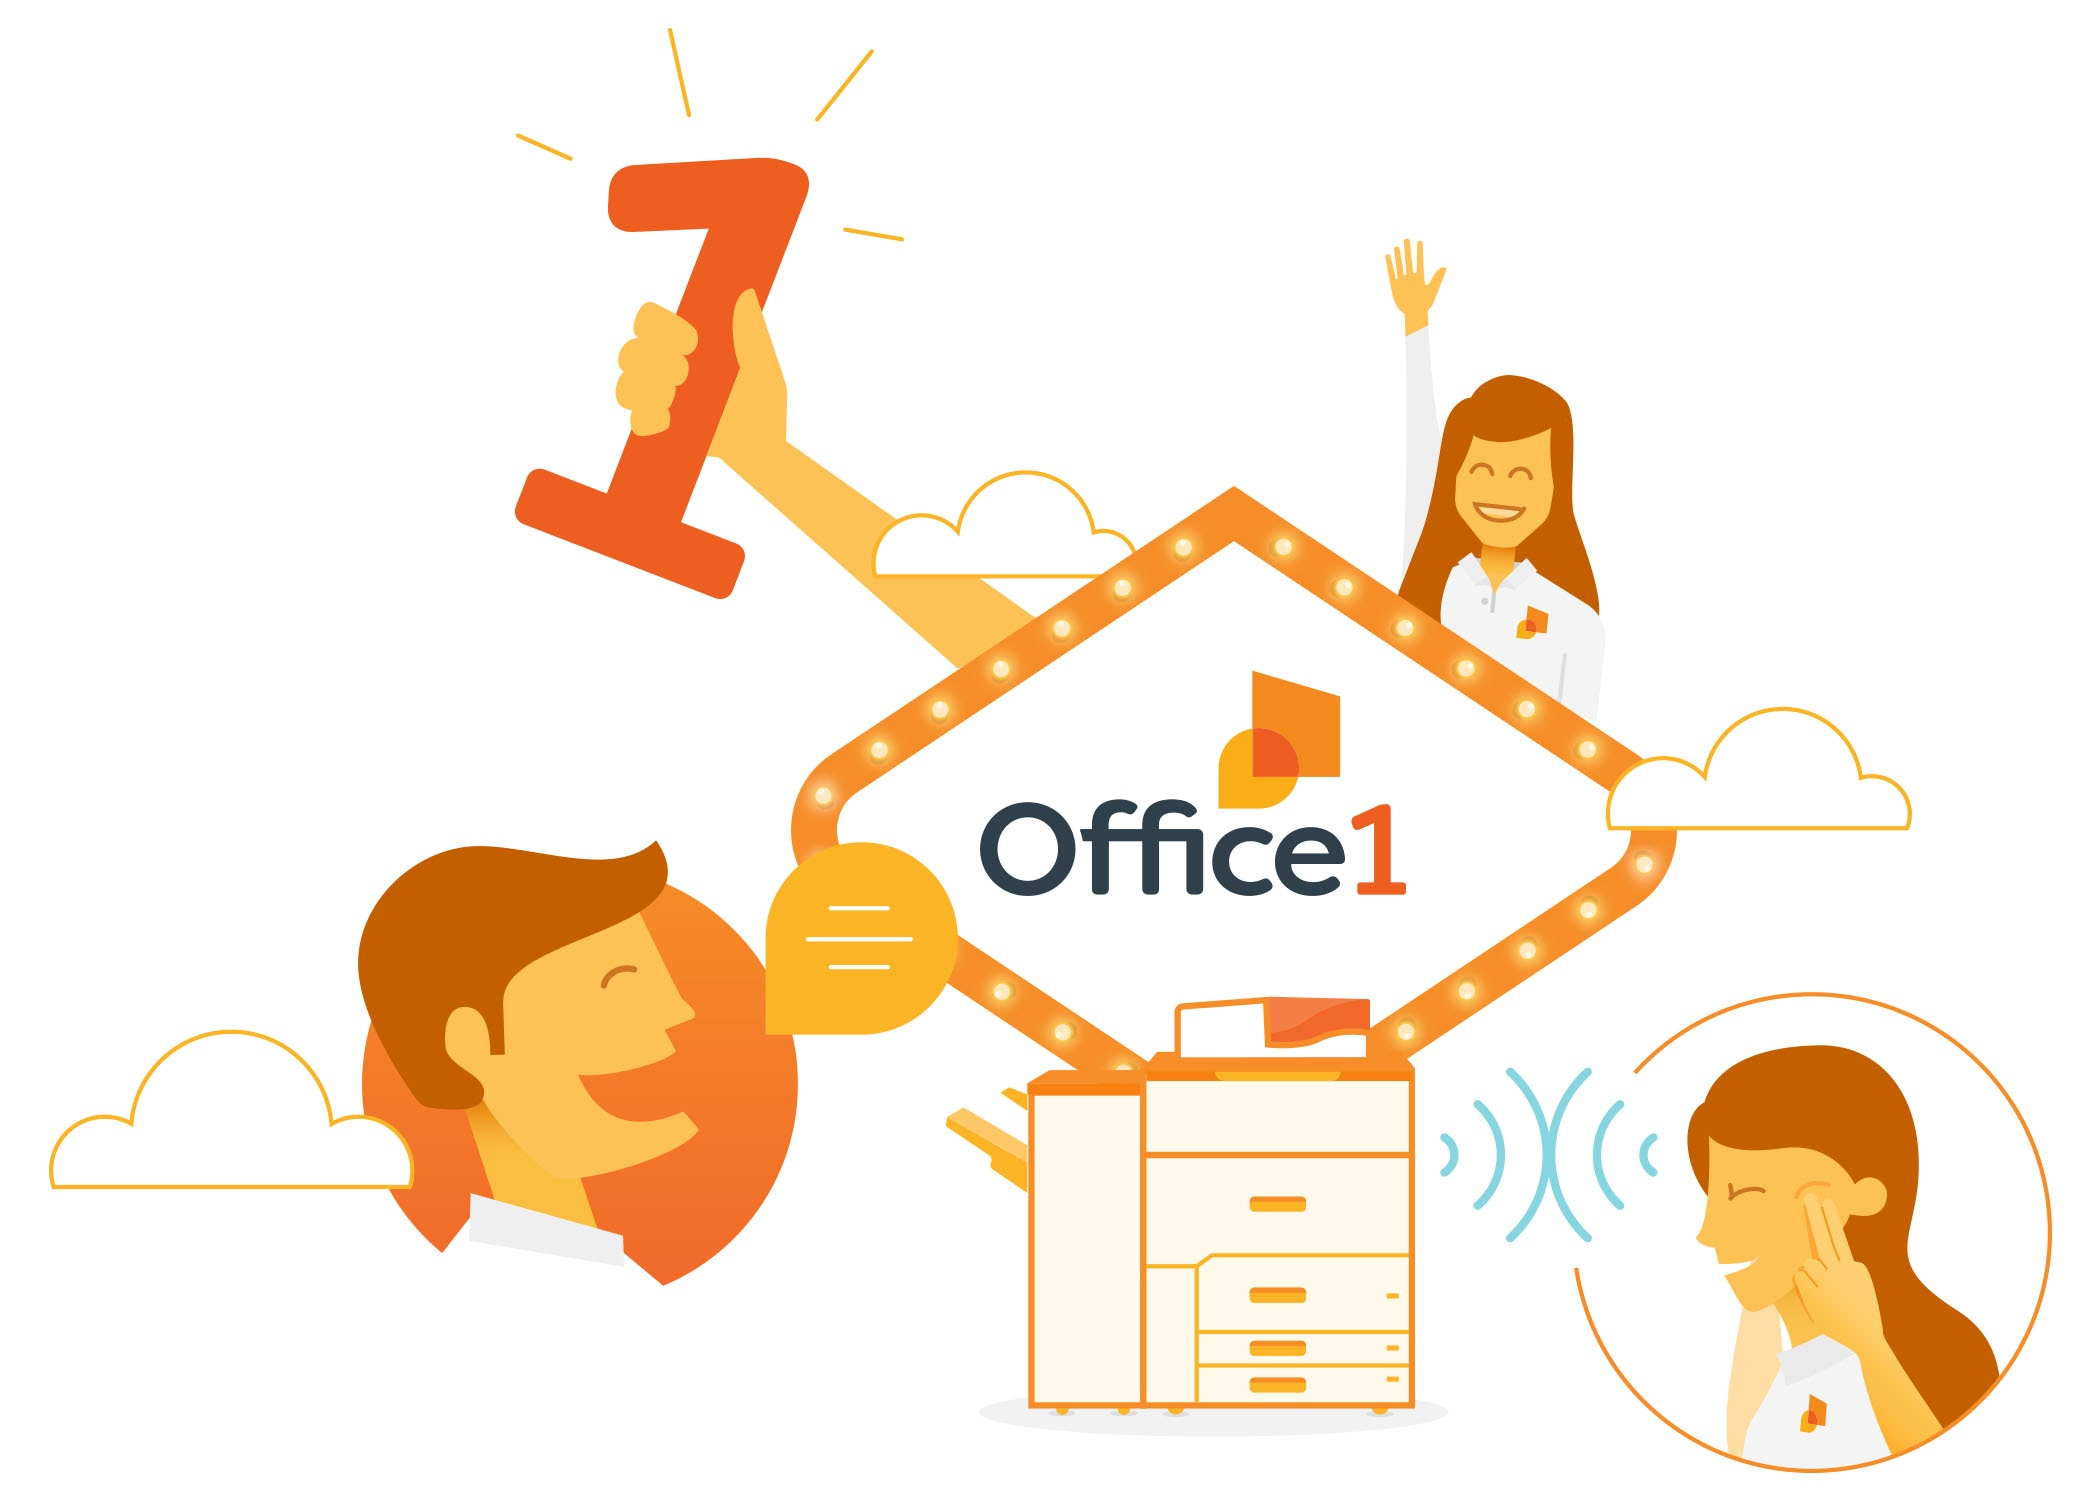 About Office1